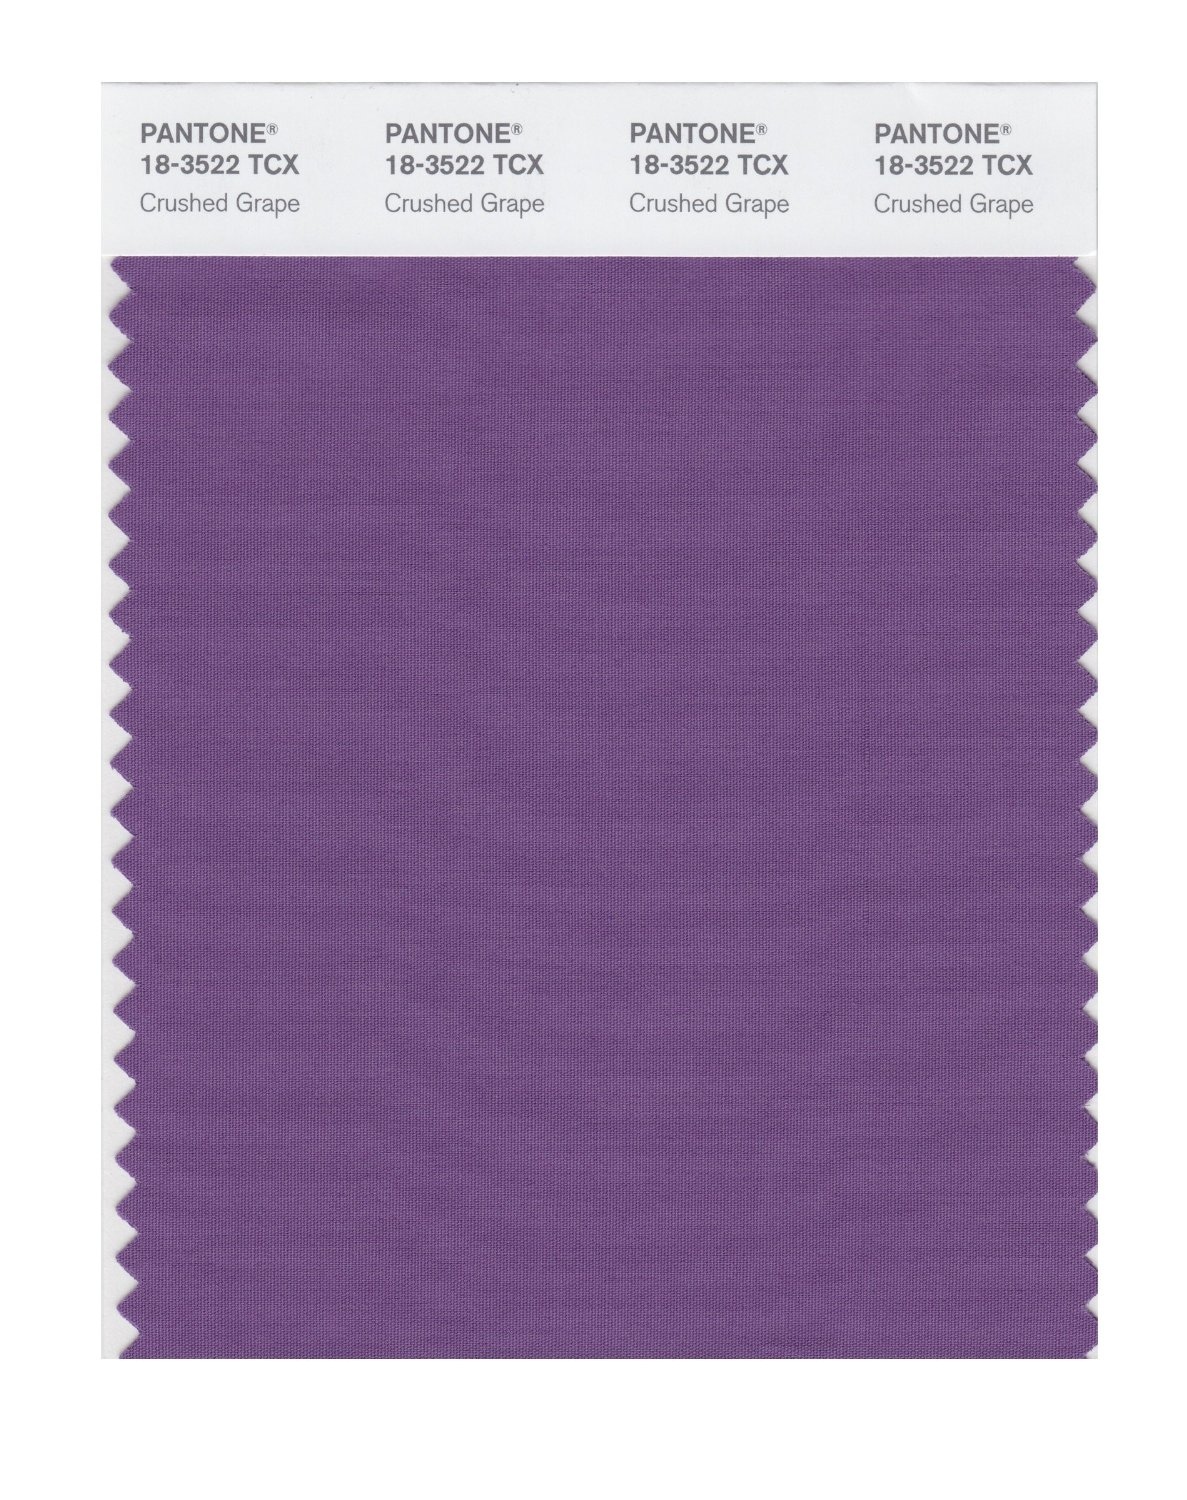 Pantone Smart Swatch 18-3522 Crushed Grape